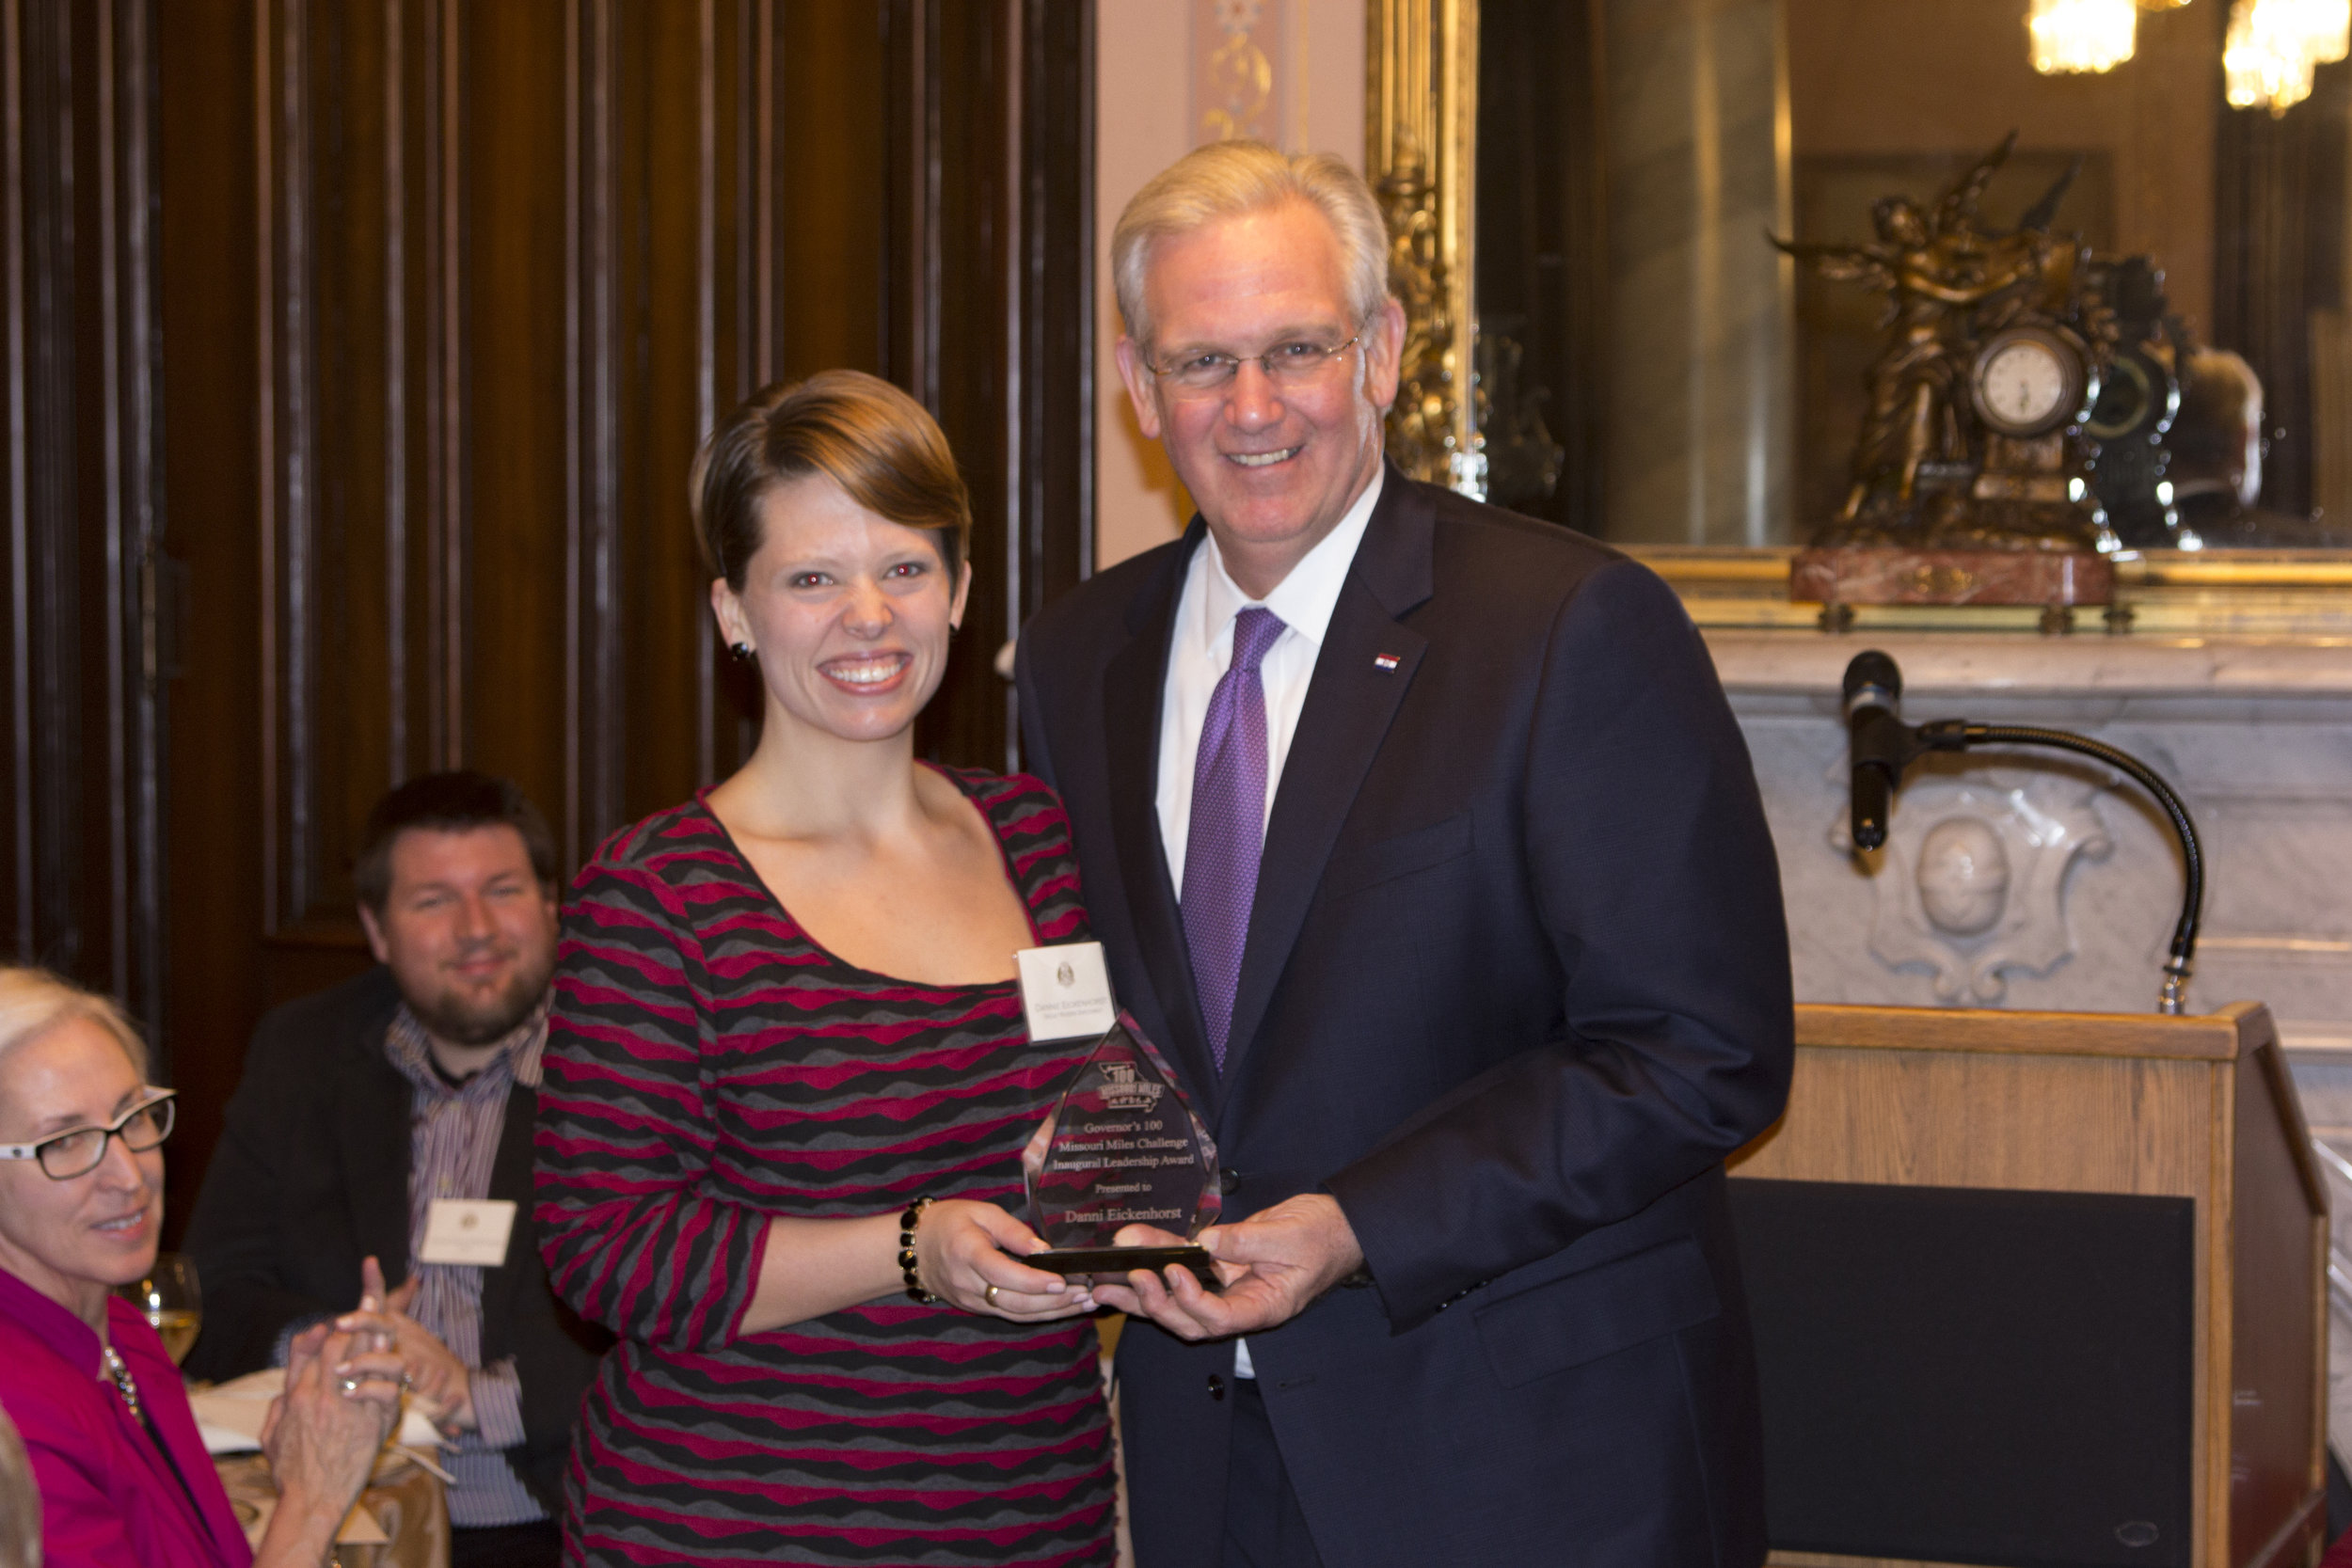 Receiving an award from Governor Jay Nixon for promotional strategy in his 100 Missouri Miles campaign.